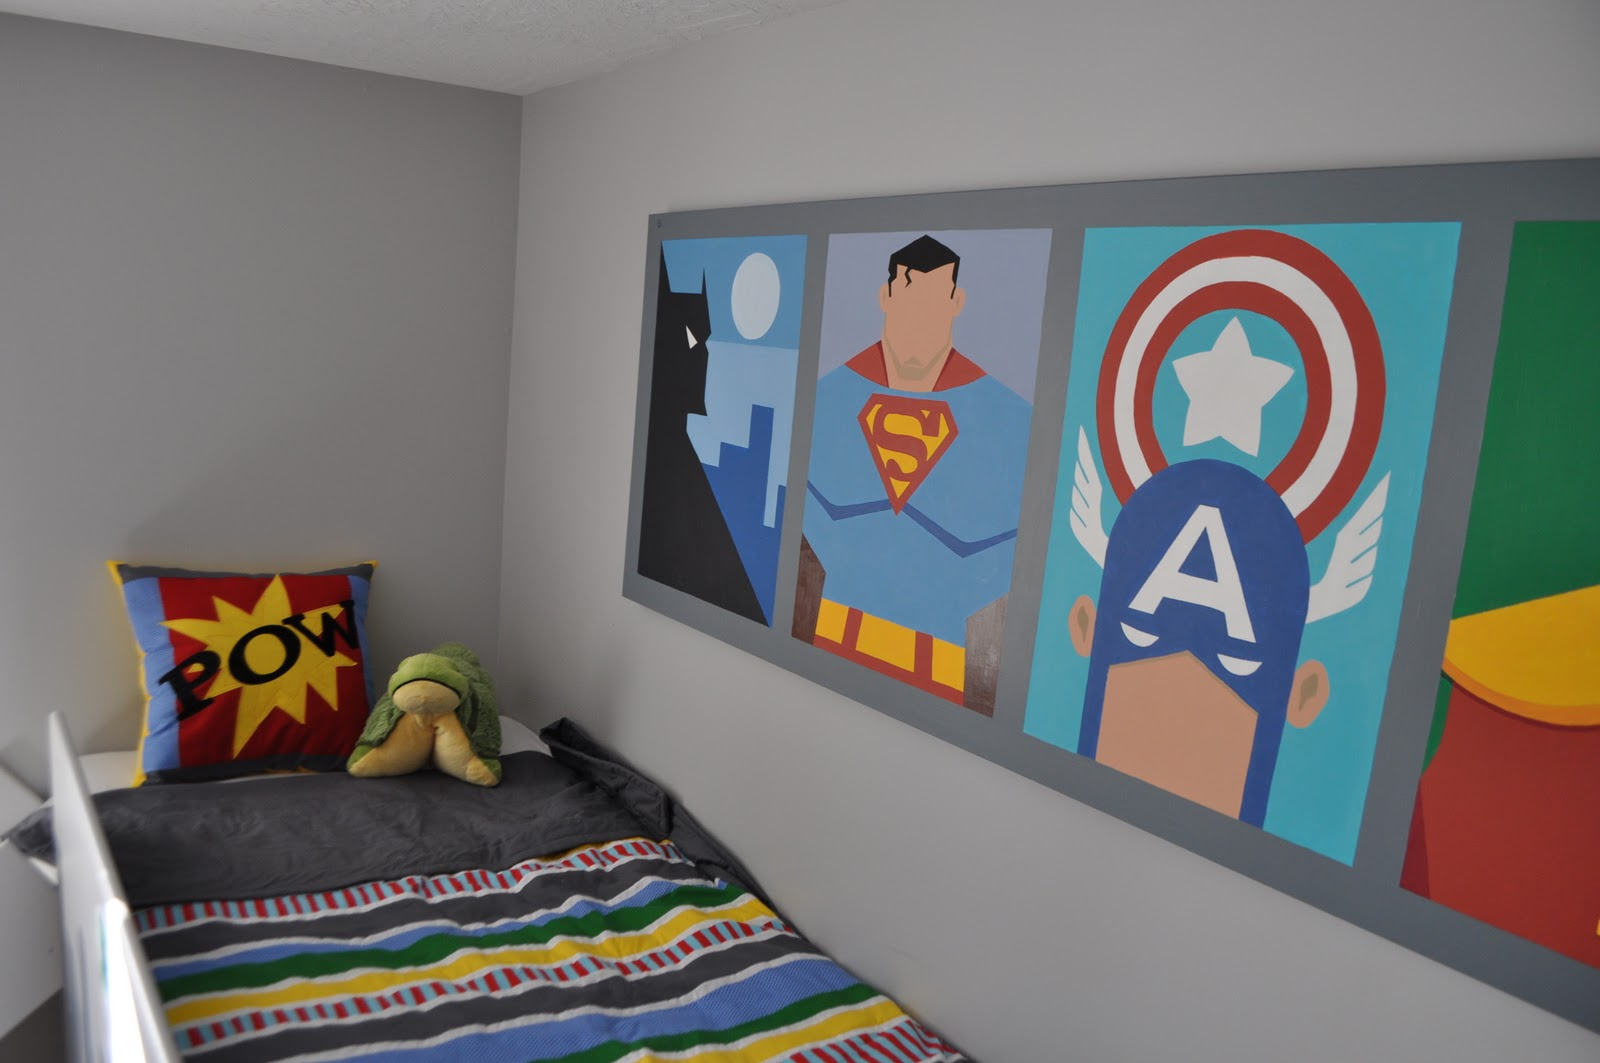 Boys Superhero Bedroom Ideas i am momma - hear me roar: superhero room - part 3